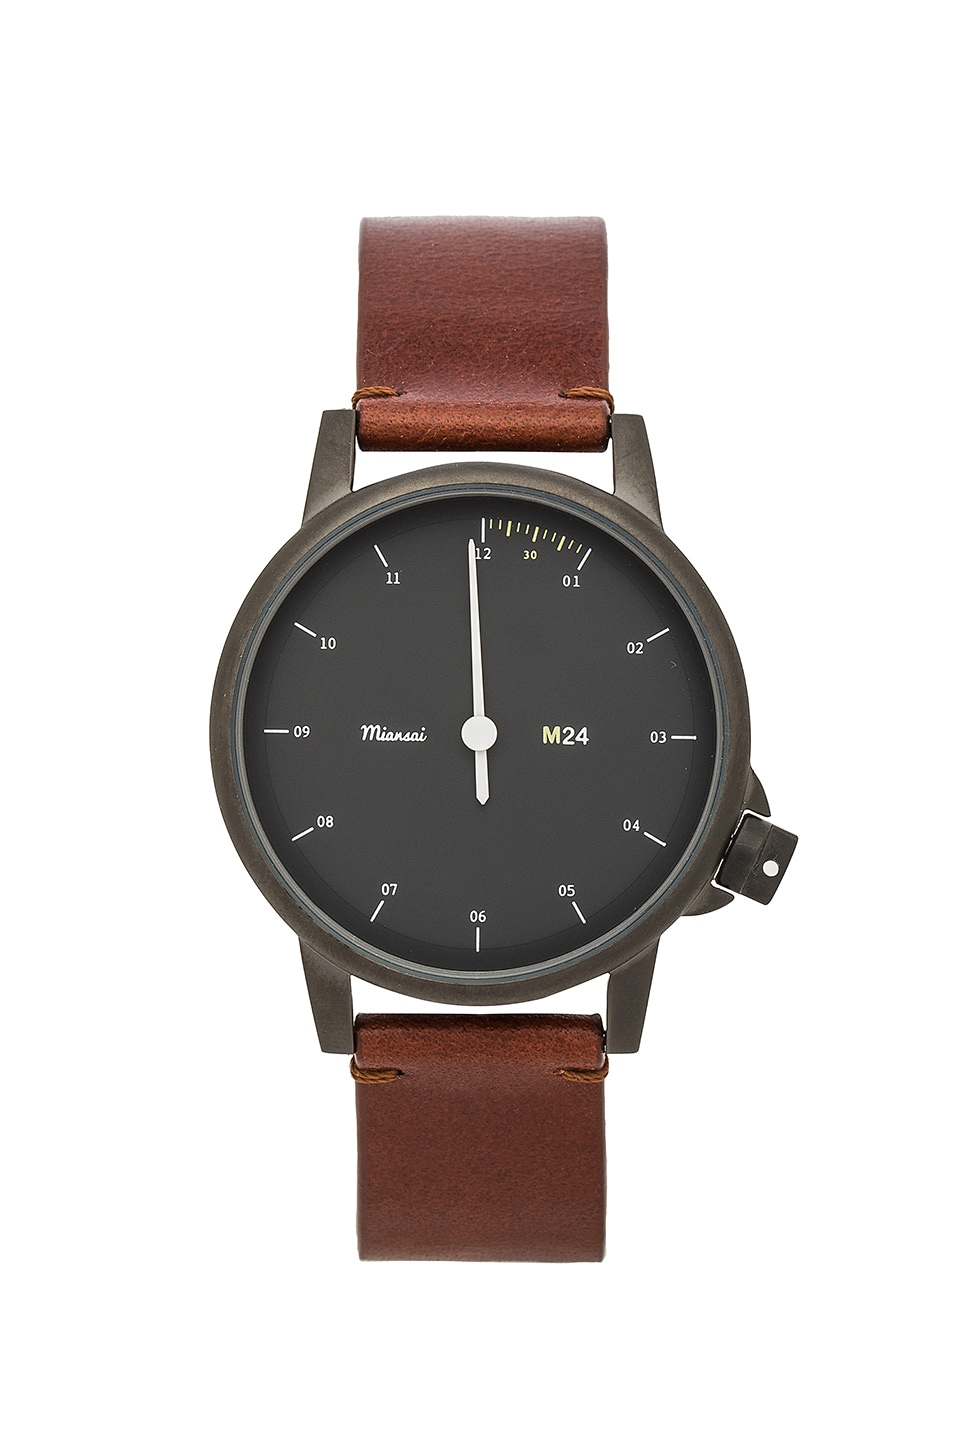 Miansai M24 Noir On All Leather Watch in Brown